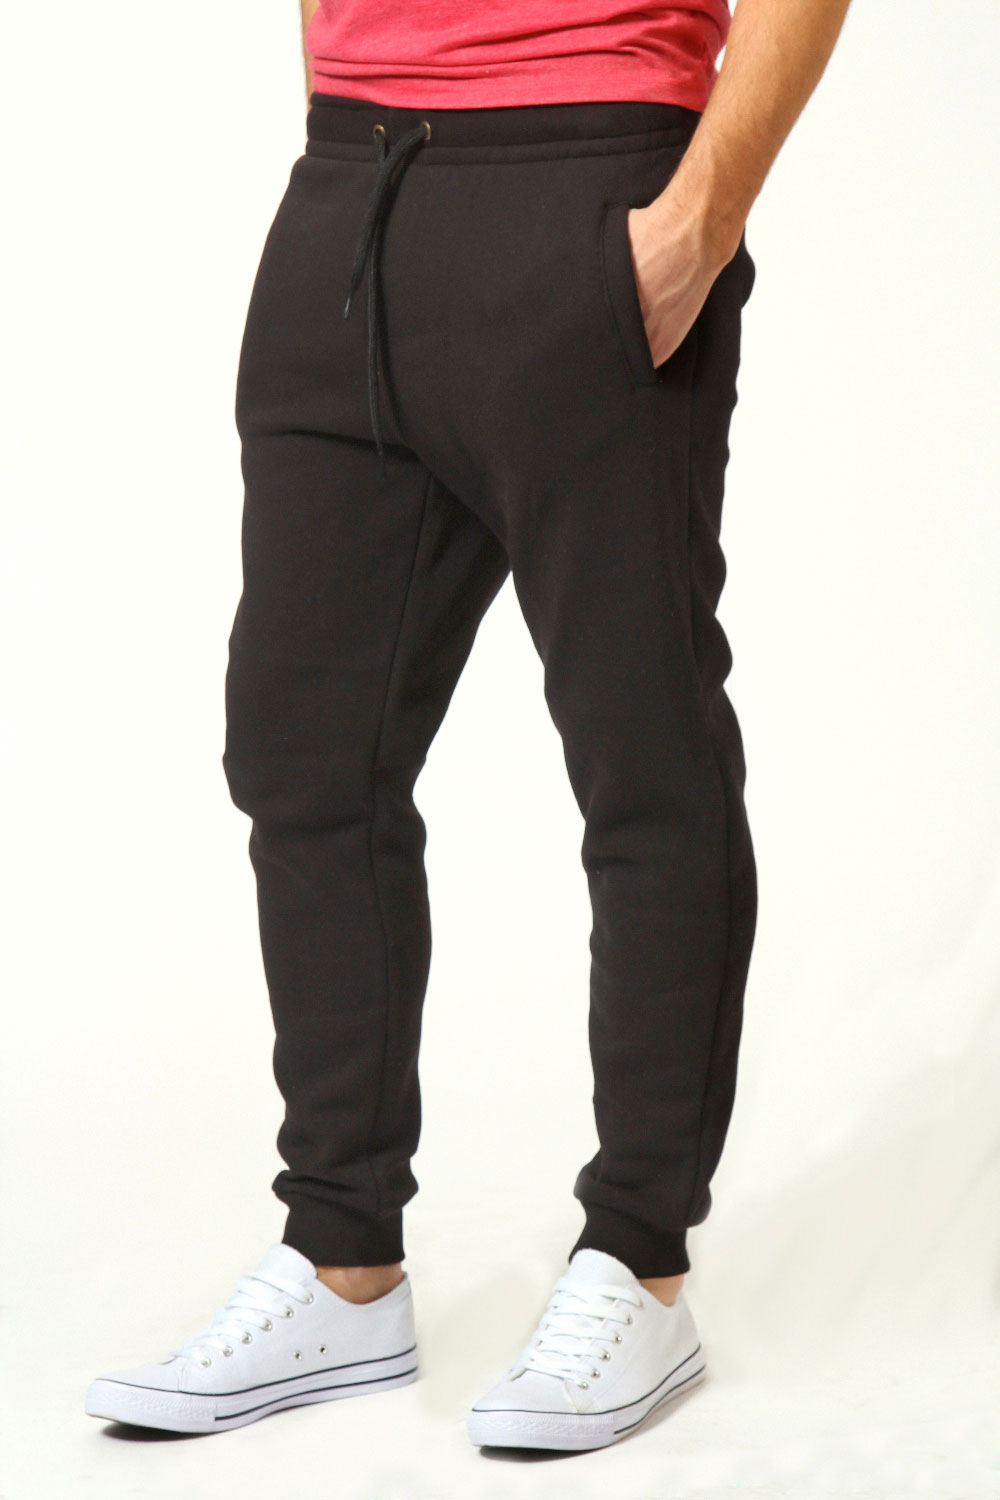 Discover our comfy range of men's joggers at ASOS. Shop a wide selection of joggers for men from skinny, cuffed to drop crotch or loose styles and colors. your browser is not supported. To use ASOS, we recommend using the latest versions of Chrome, Firefox, Safari or Internet Explorer.